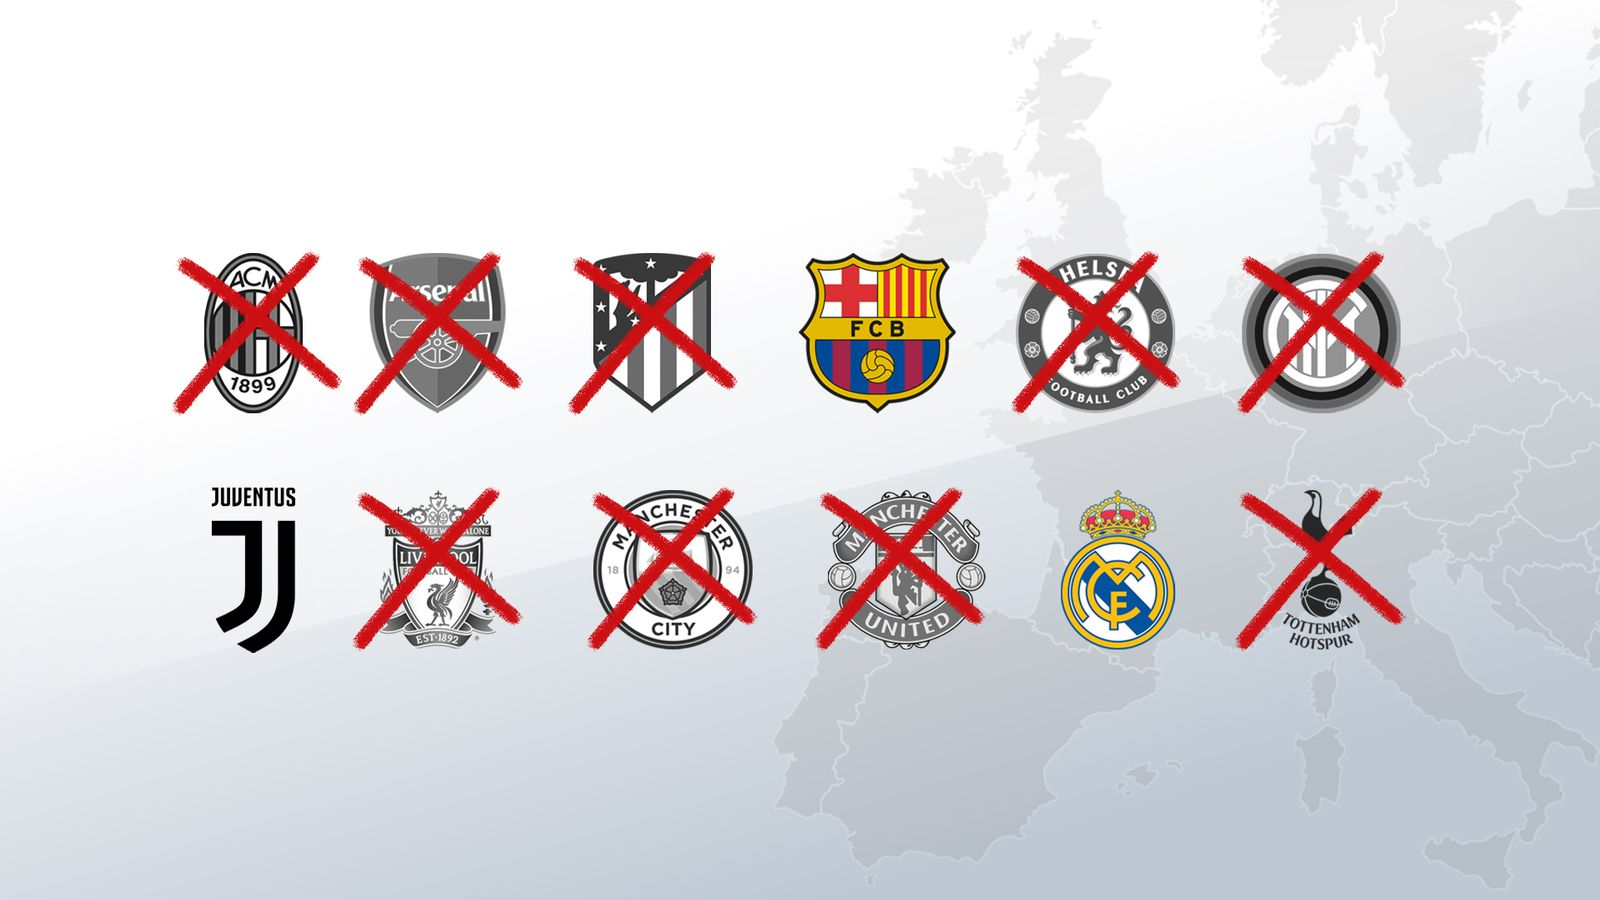 European Super League: Real Madrid, Barcelona and Juventus respond to UEFA